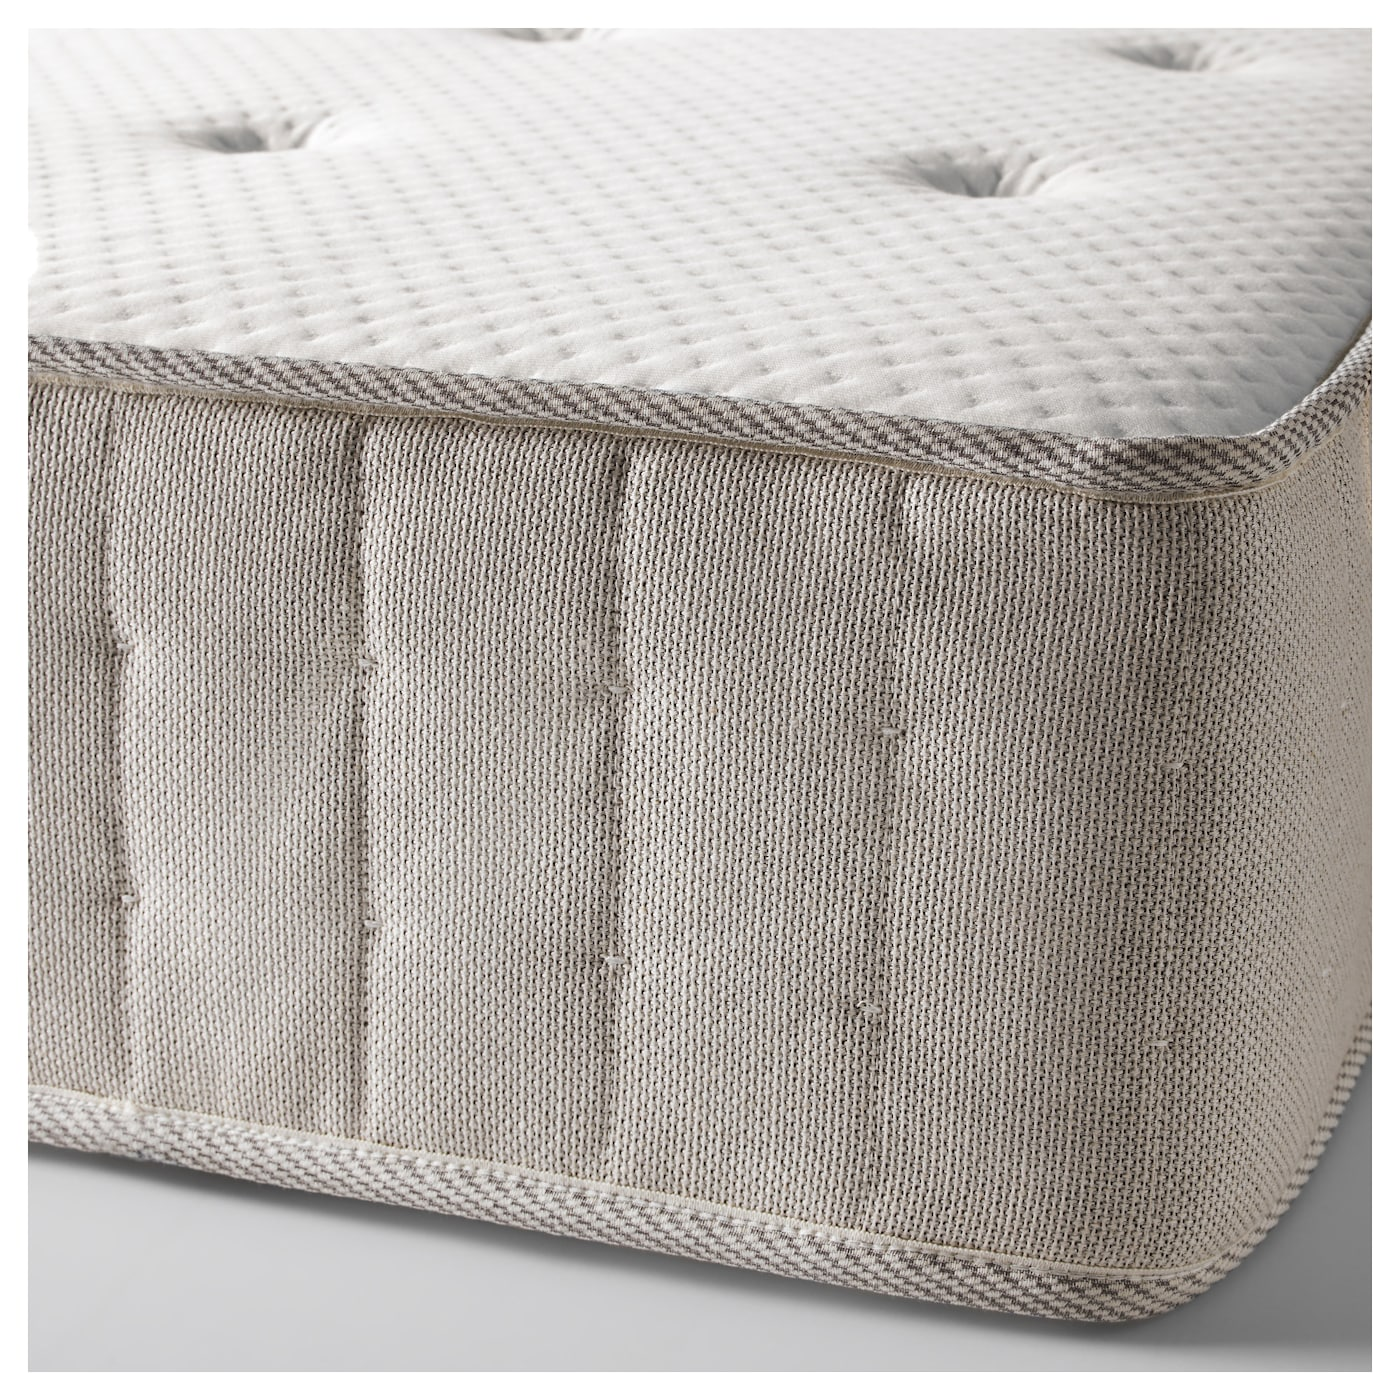 IKEA HESSENG pocket sprung mattress Designed to be used on one side only – no need to turn.